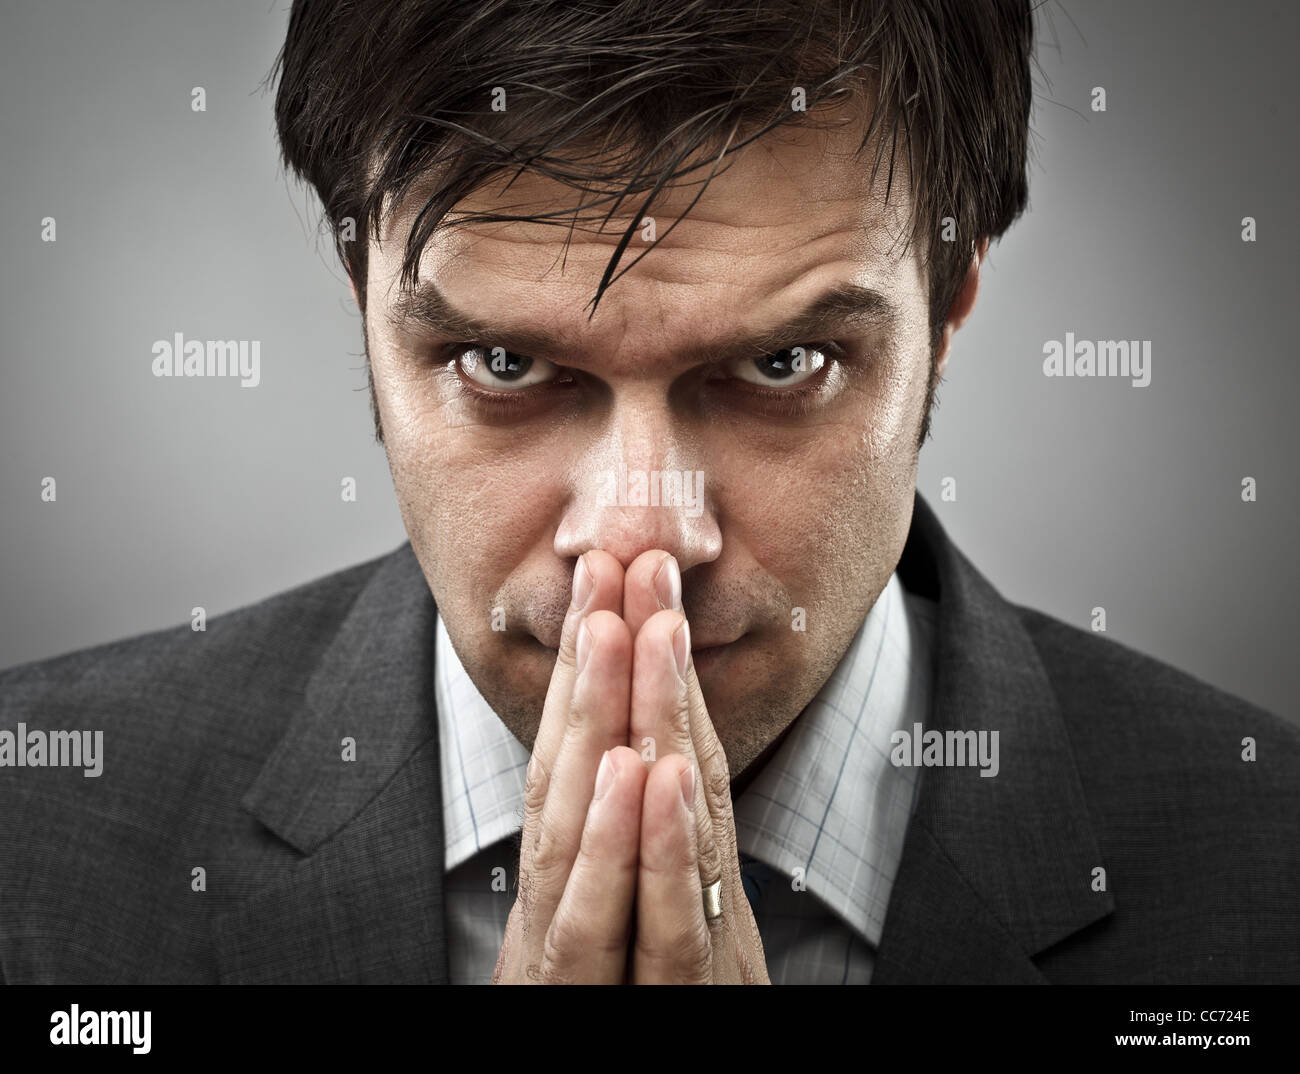 Young businessman with an expression of intense concentration - Stock Image